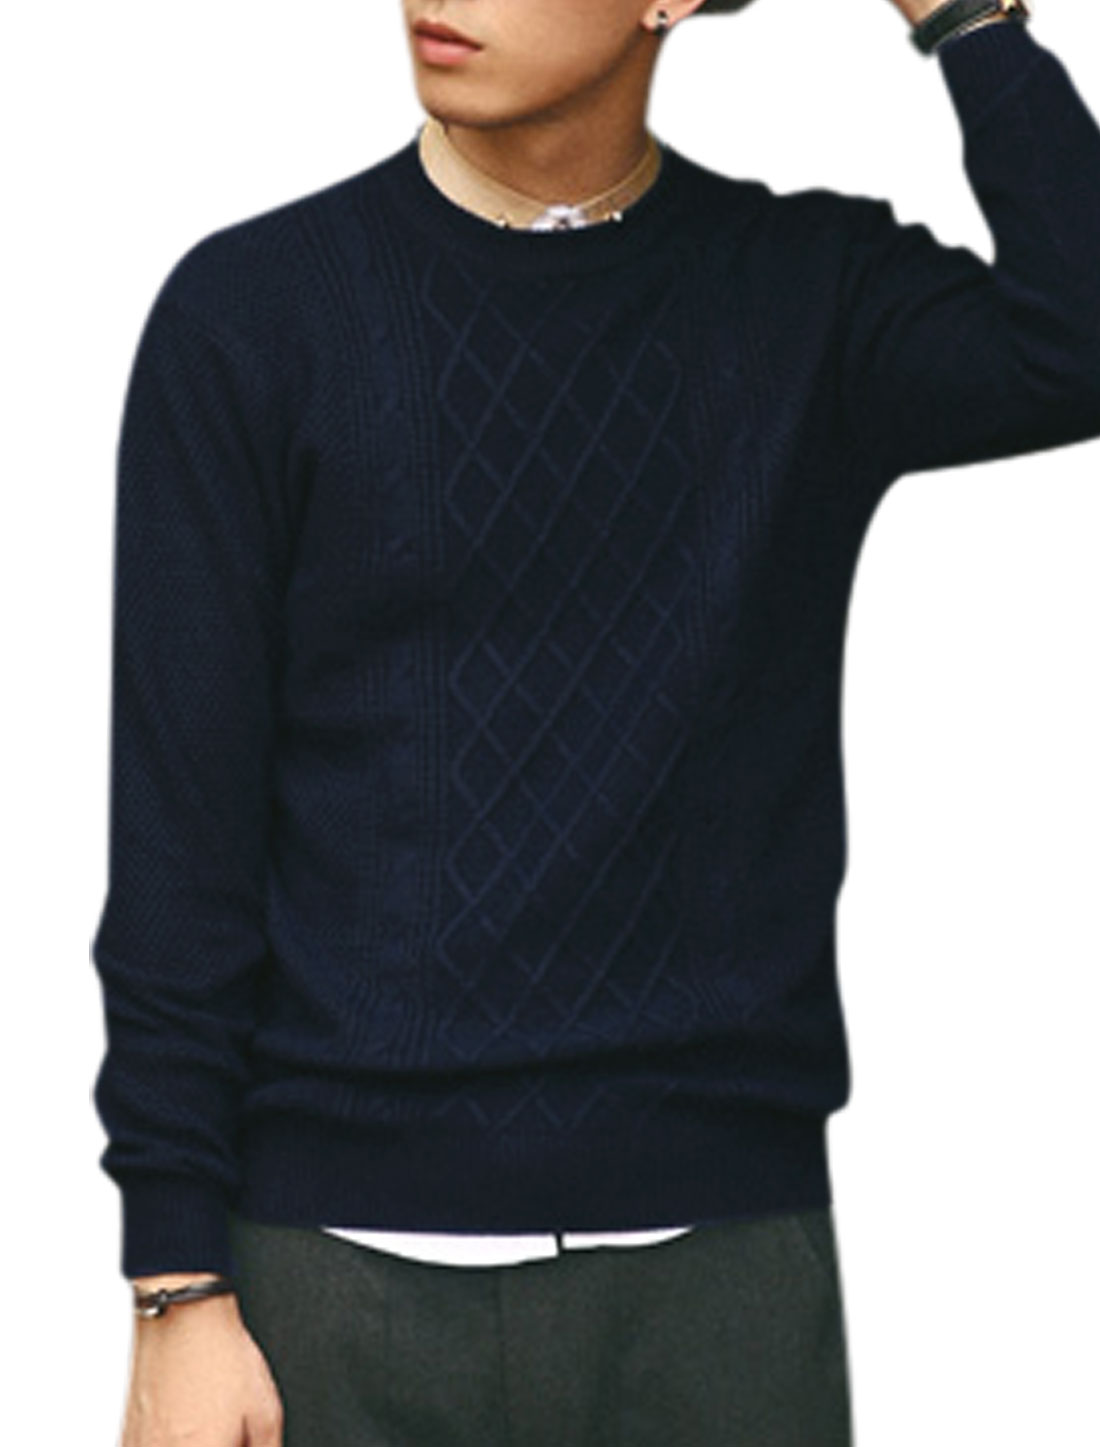 Long Sleeves Argyle Design Ribbed Hem Casual Sweater for Men Navy Blue S